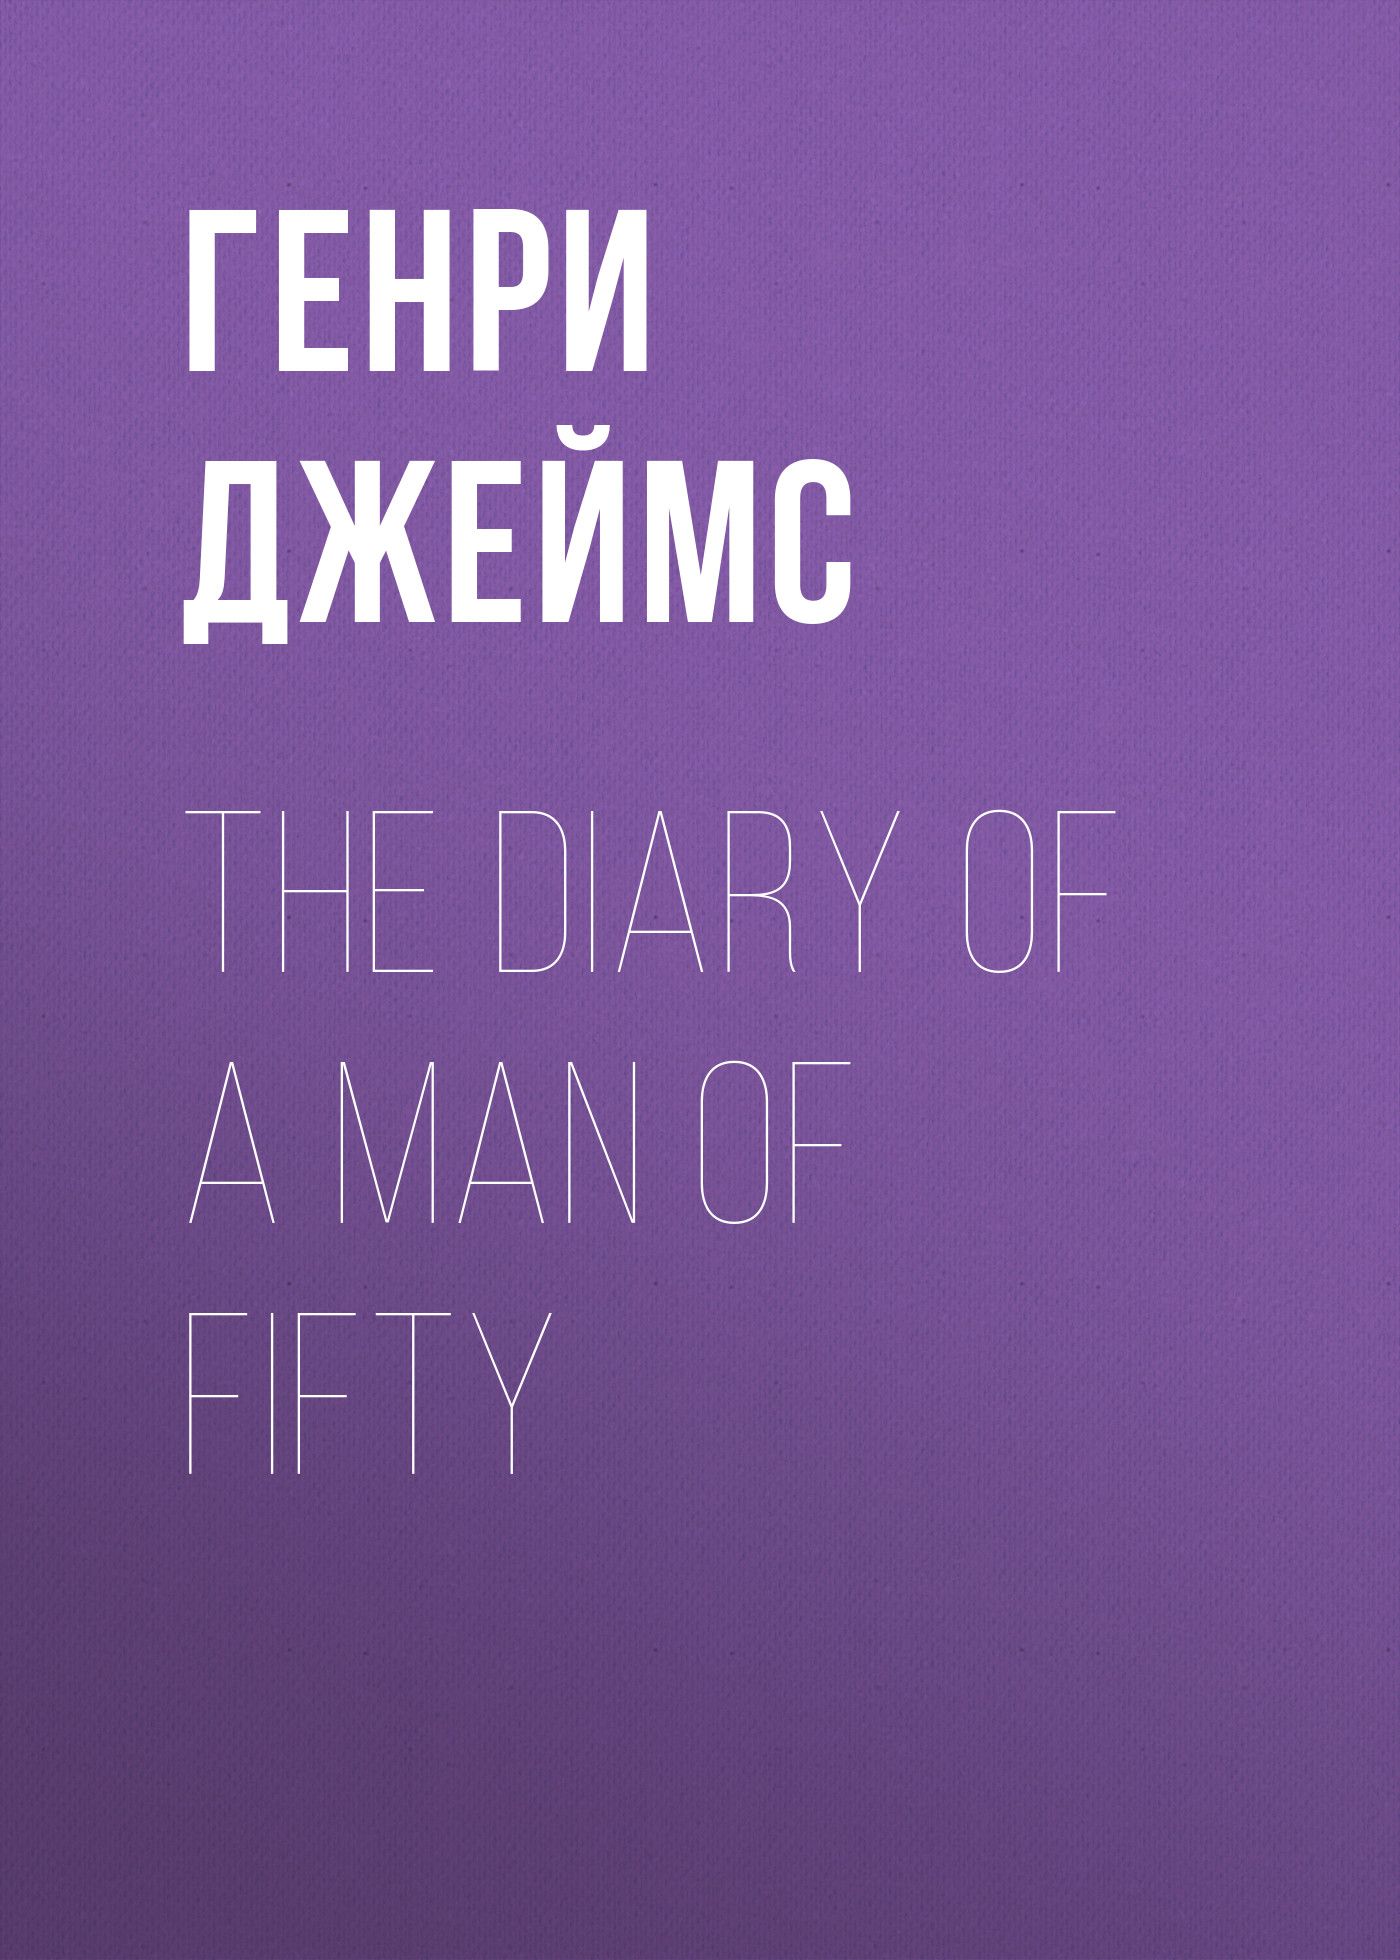 Генри Джеймс The Diary of a Man of Fifty генри джеймс the spoils of poynton